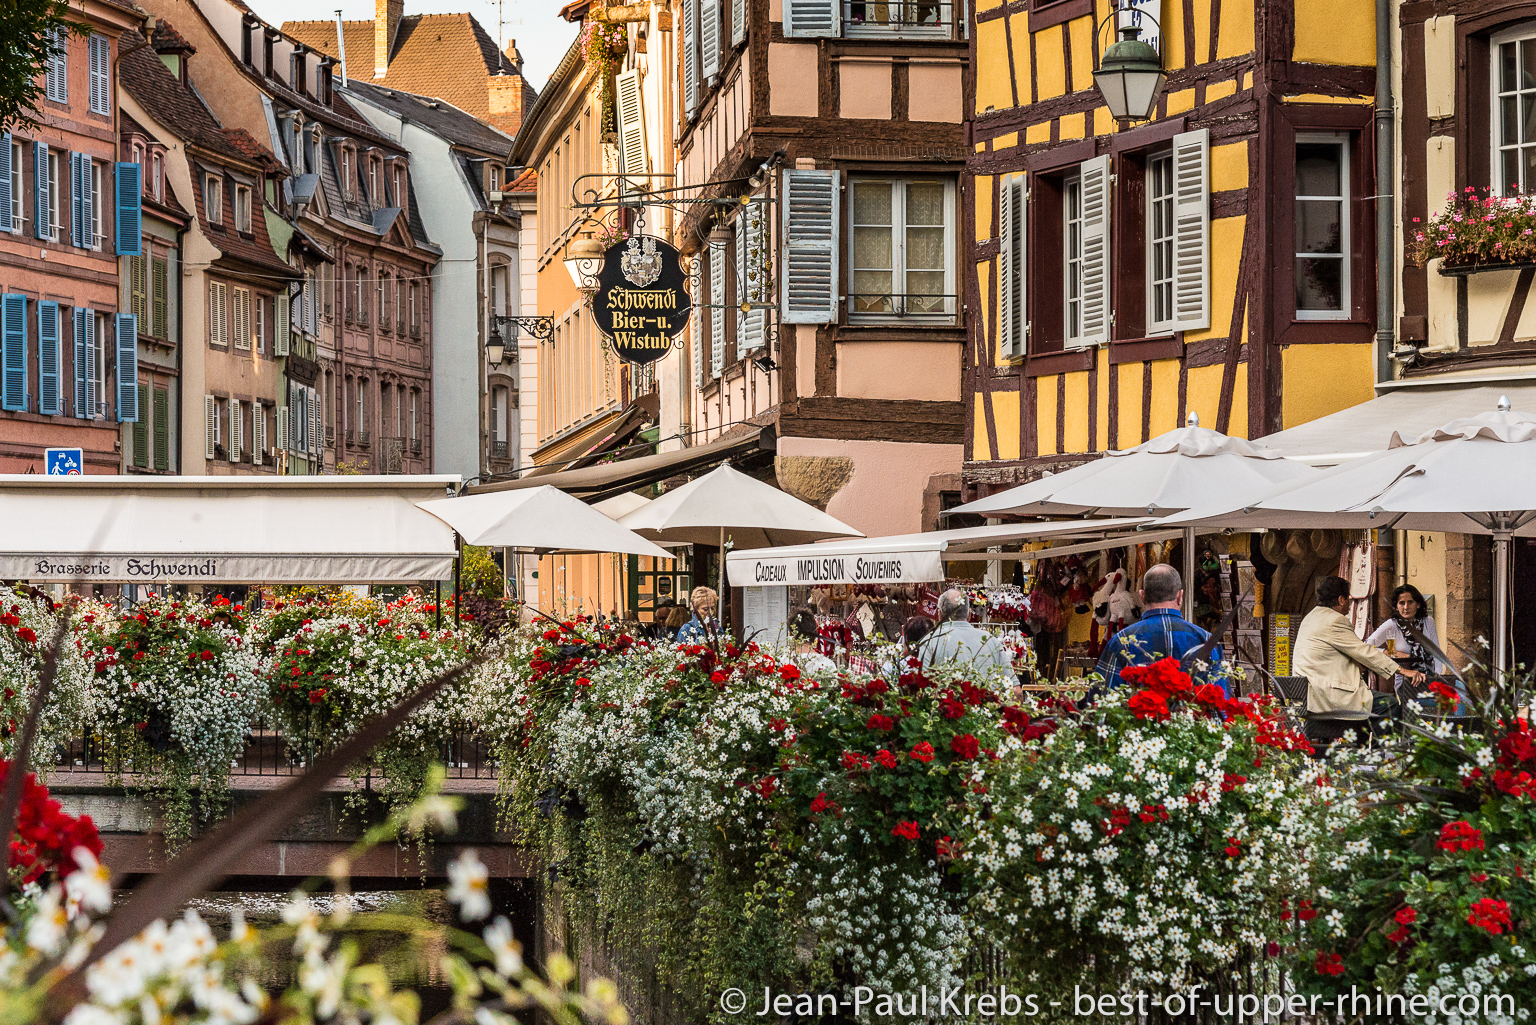 The historical city of Colmar